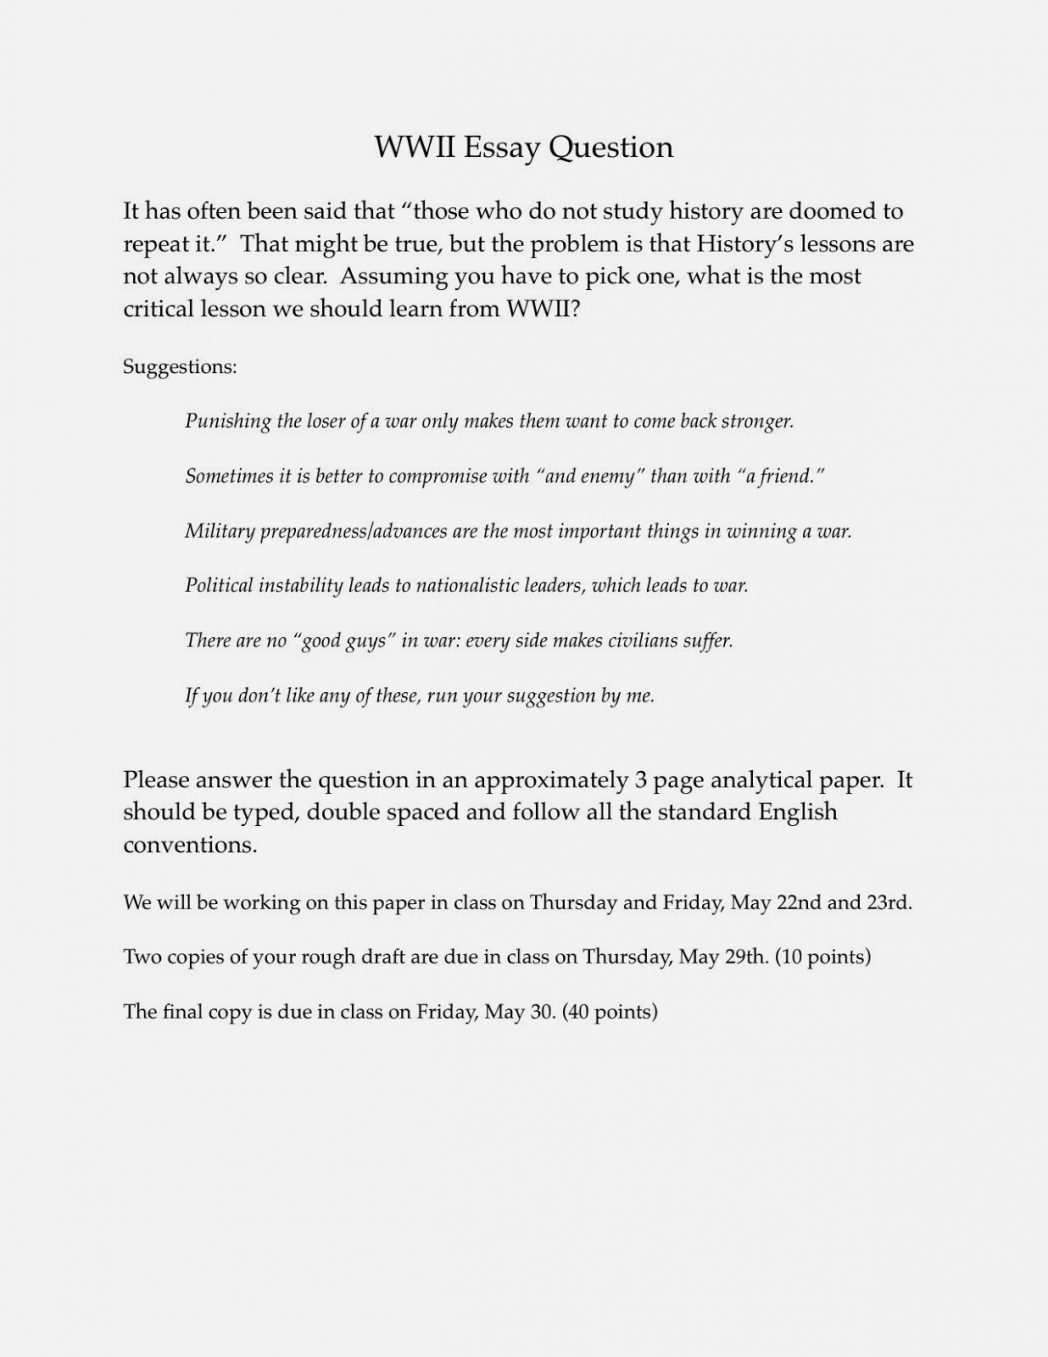 002 Essay Example History Of Basketball Essaycover Letter Template For Tsi Writing Scores Wwiies Prompts Surprising 24 Essays24 Free Account Join Essays24.com Full